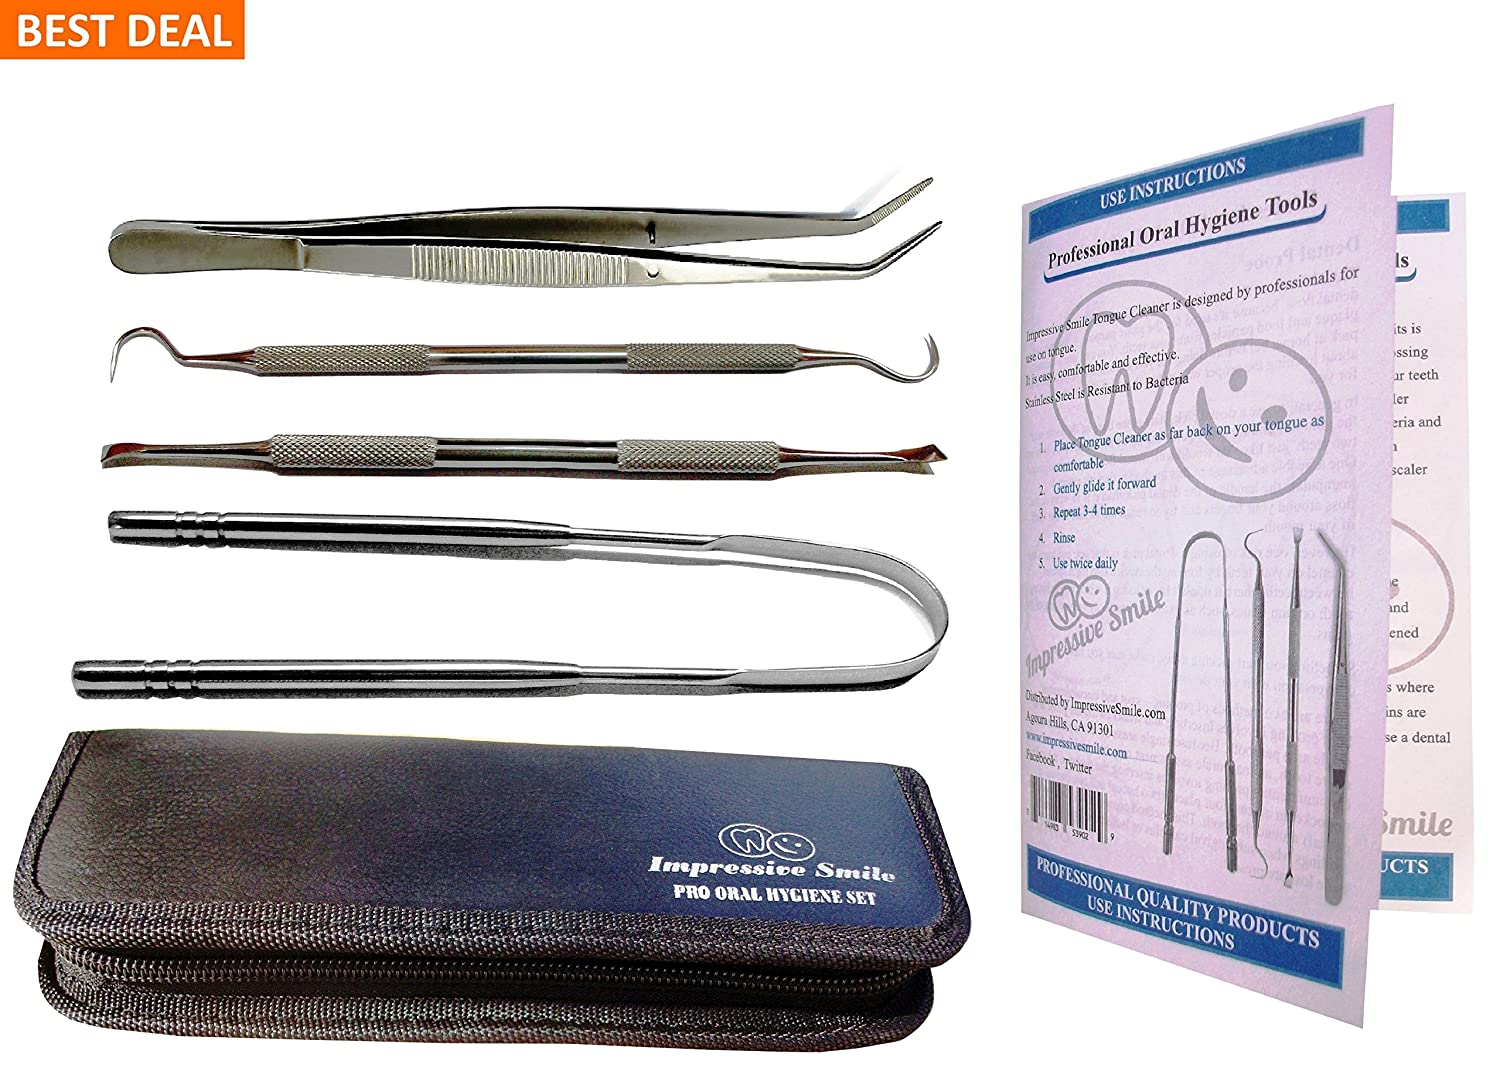 Essential and Stylish Pro Oral Hygiene Kit for Home Use - Calculus & Plaque Remover Set - Tartar Scraper - Scaler Instrument, Tongue Cleaner, Dental Tweezers, Instructions - Used by Dentists Impressive Smiles